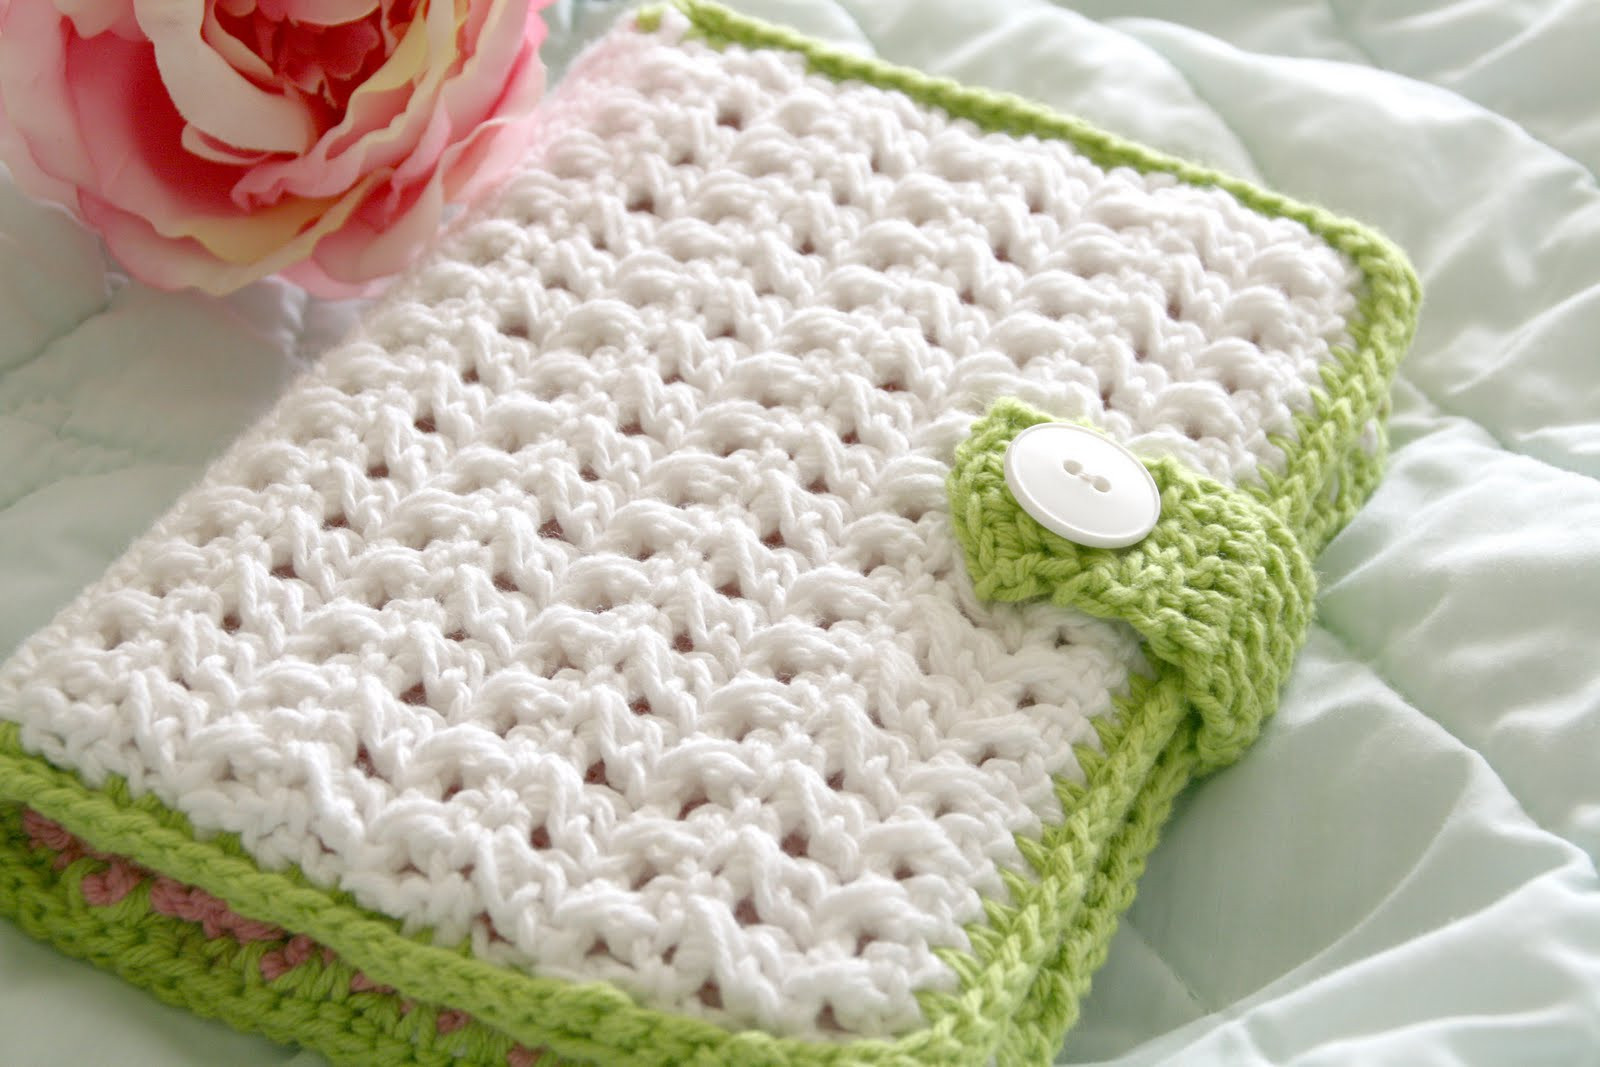 Best Of Crochetoholic S Crochet Place some Fun and Cute Patterns Cool Crochet Patterns Of Awesome 45 Ideas Cool Crochet Patterns